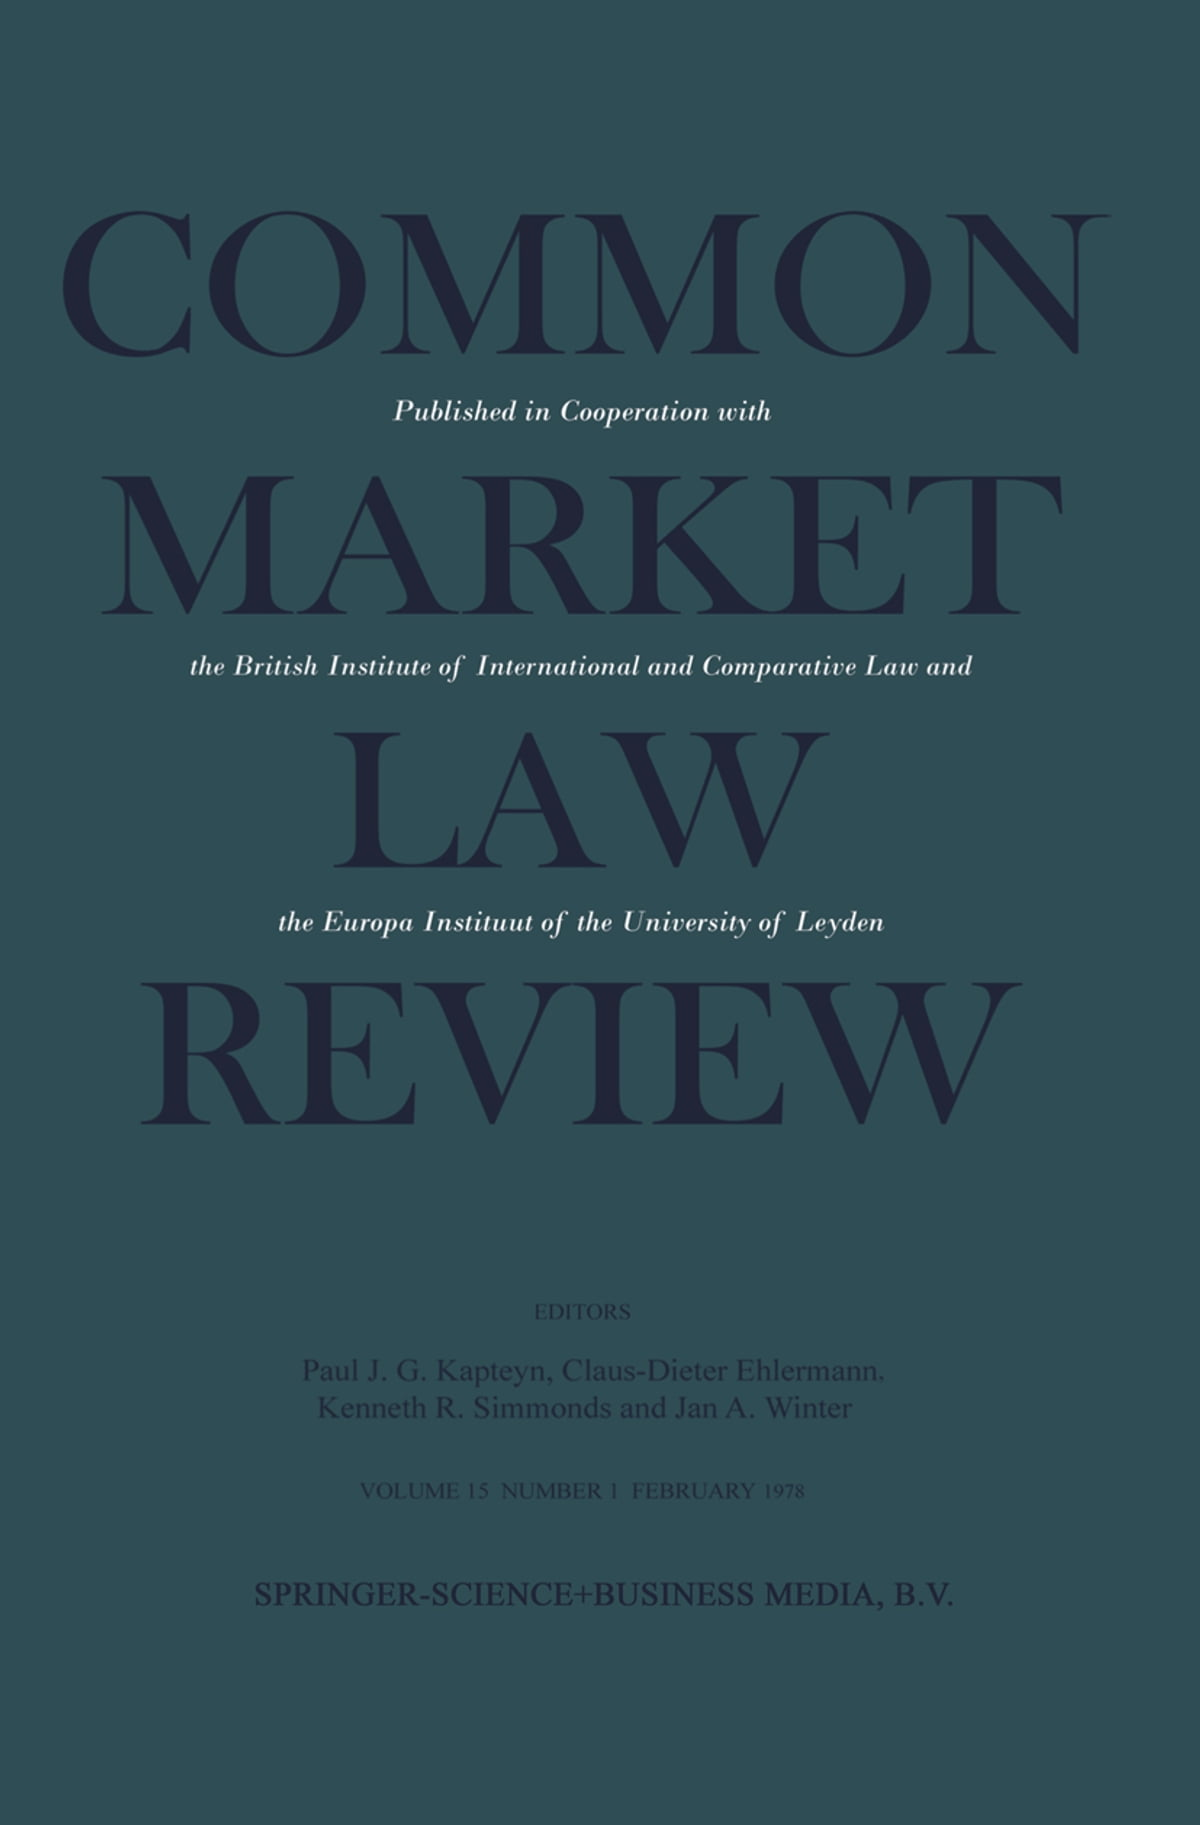 Common Market Law Review: Sijthoff Award 1978 European Law Essay